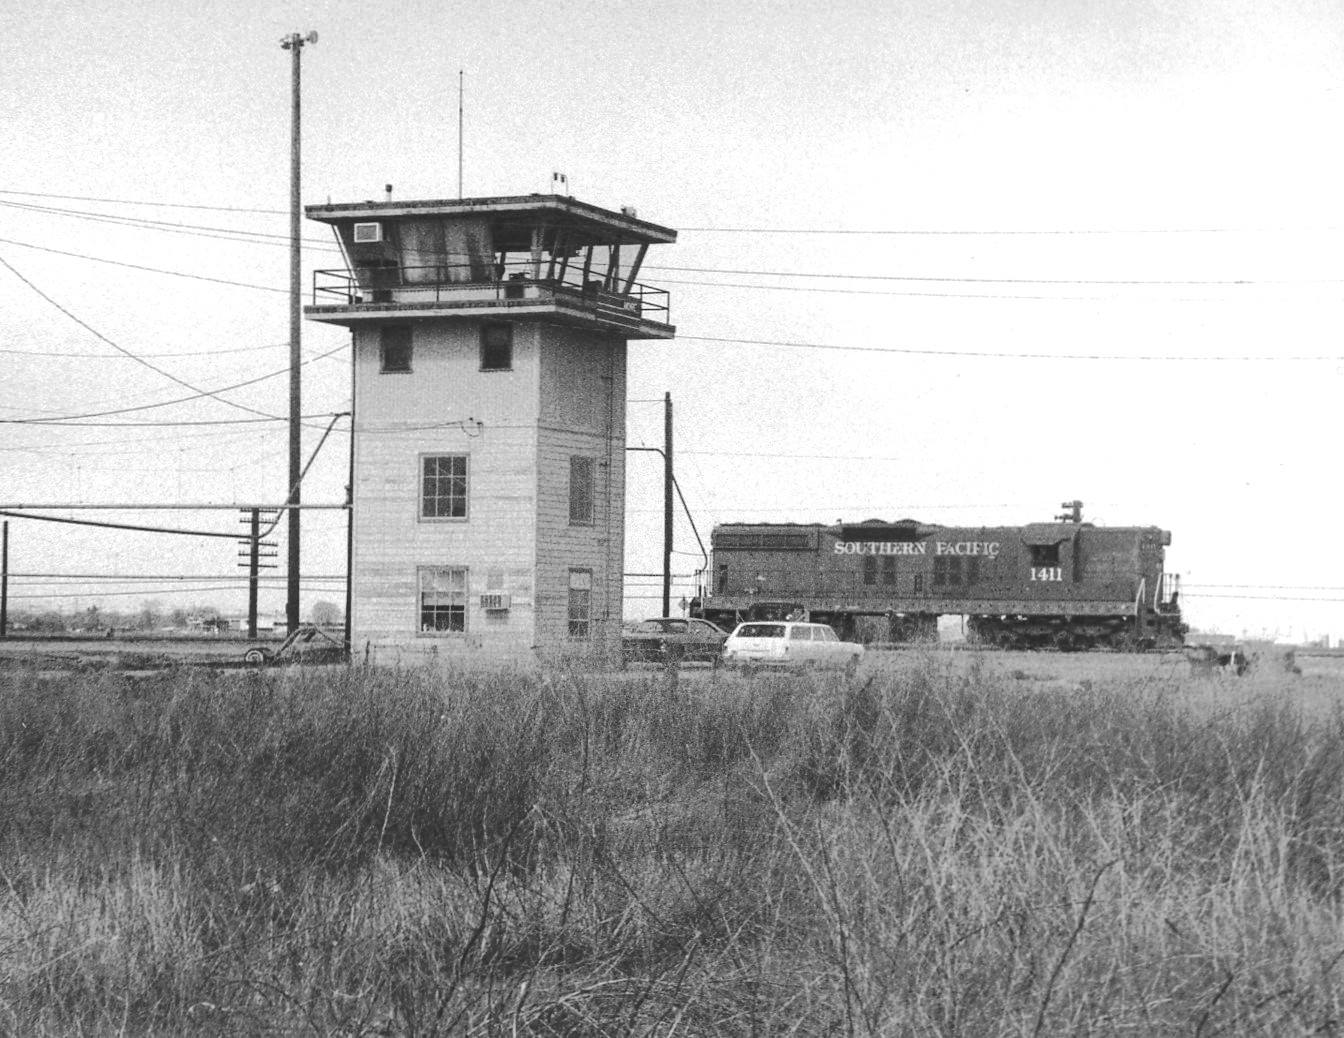 SP Tracy Yard Tower (Photo)